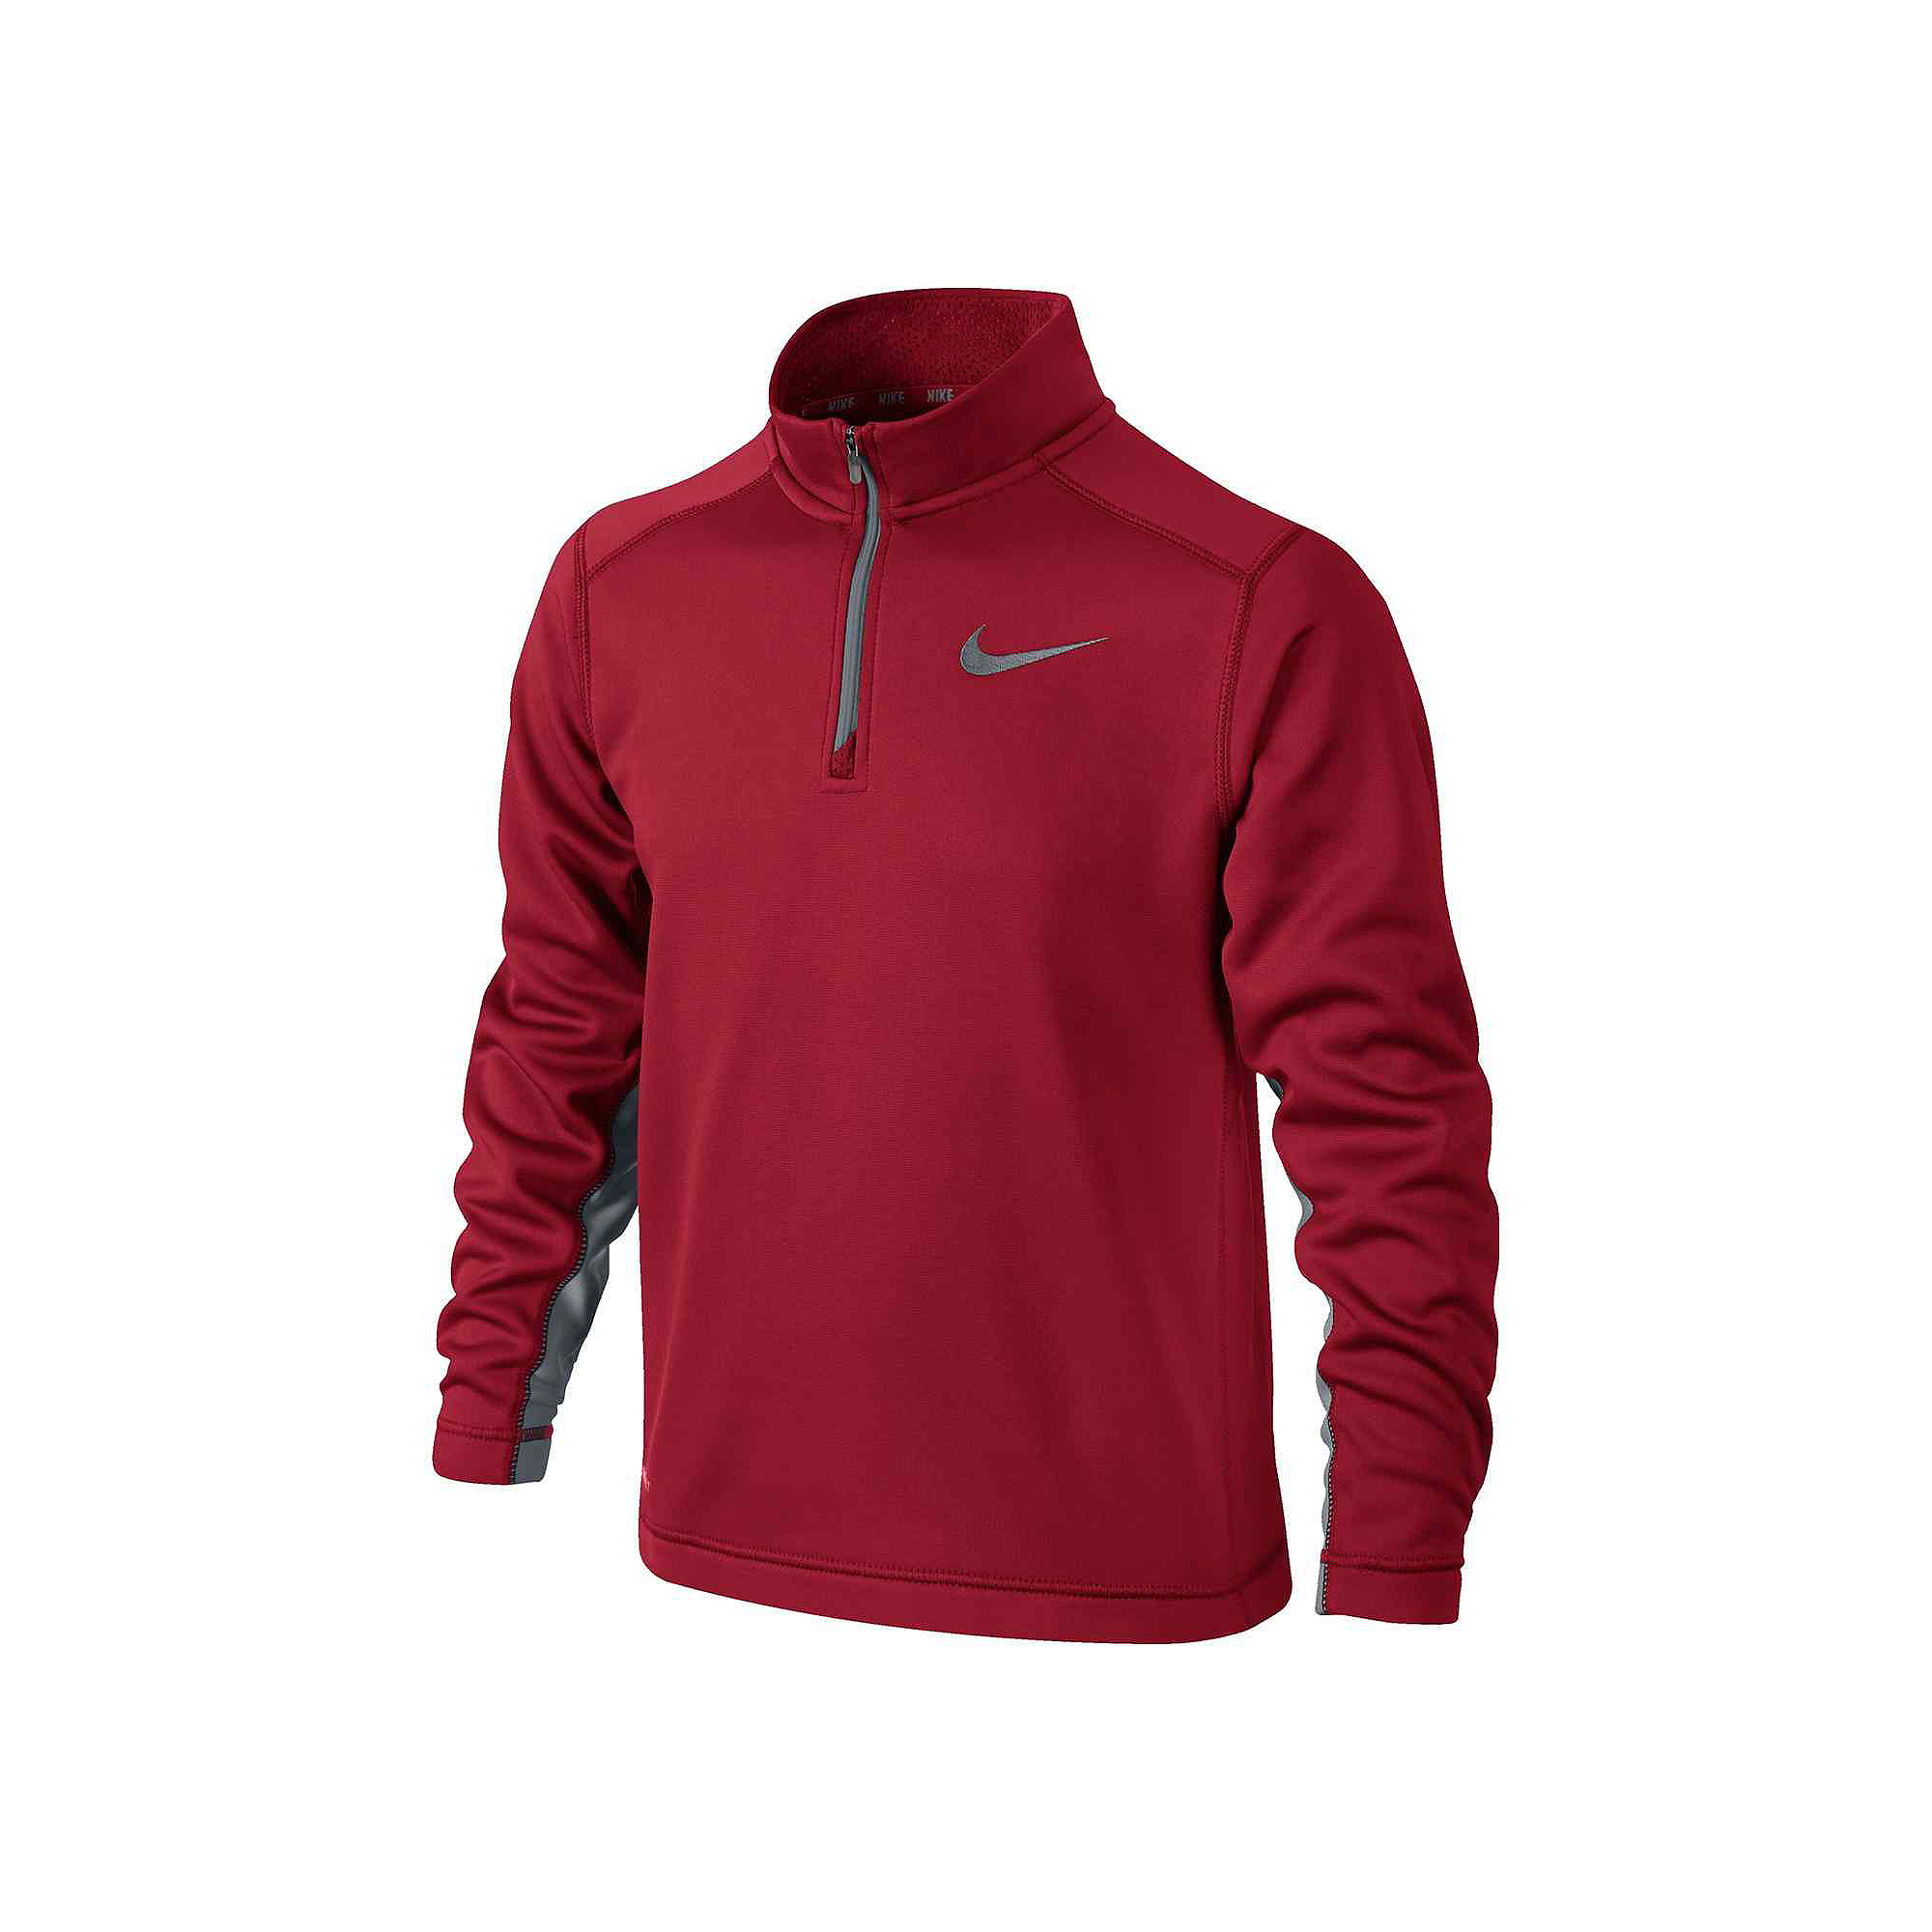 559d929f ... Nike Long-Sleeve 1/4-Zip Therma-FIT Jacket - Boys 8-20. UPC 887225429201